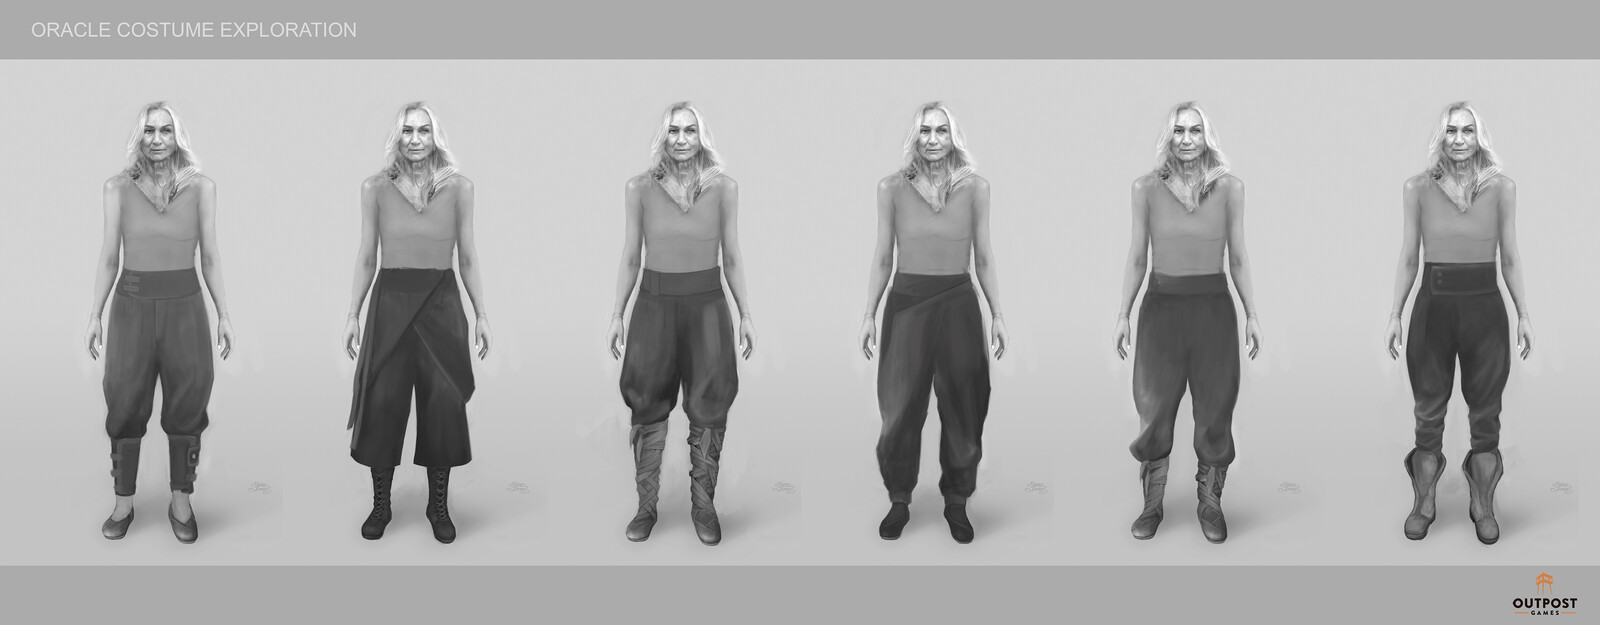 Oracle - Costume Part System Design (Pants)